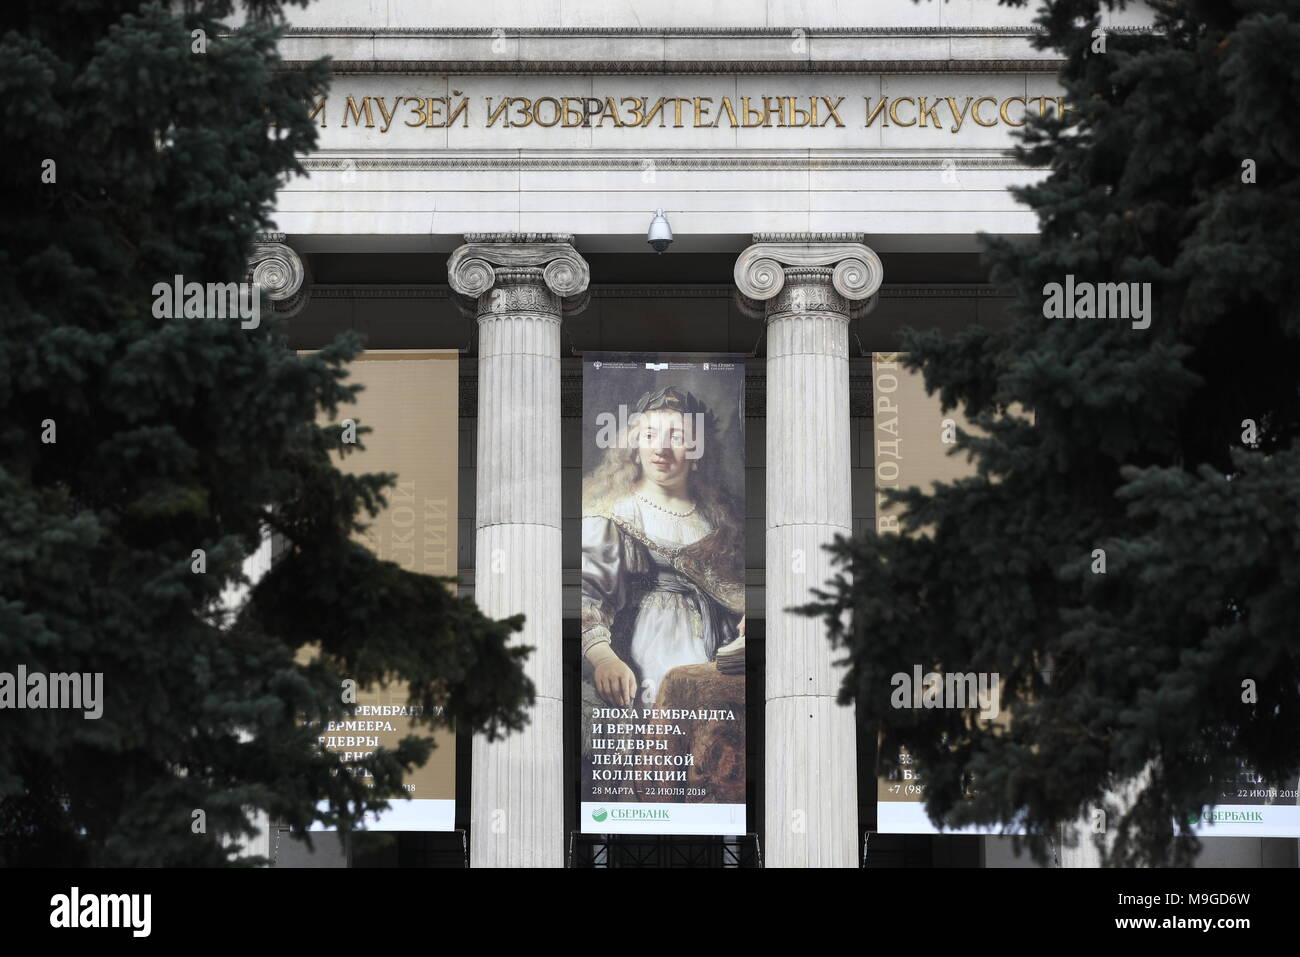 "Moscow, Russia. 26th Mar, 2018. MOSCOW, RUSSIA - MARCH 26, 2018: A poster of an exhibition titled ""The age of Rembrandt and Vermeer. Masterpieces of the Leiden Collection"" outside the Pushkin State Museum of Fine Arts. Valery Sharifulin/TASS Credit: ITAR-TASS News Agency/Alamy Live News Stock Photo"